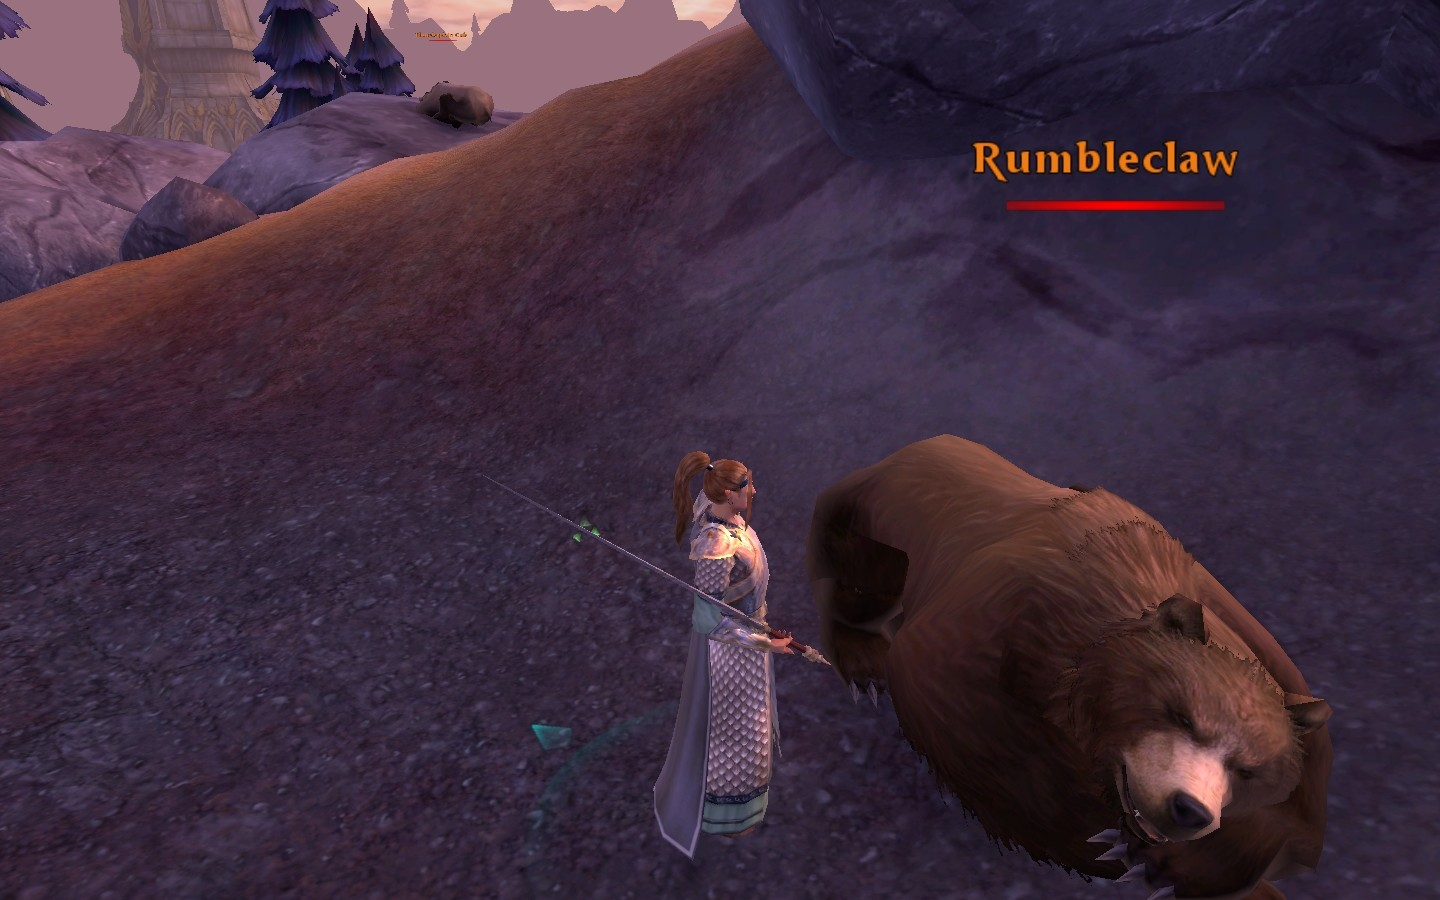 Warhammer Online: Age of Reckoning - Good thing he is sleeping....